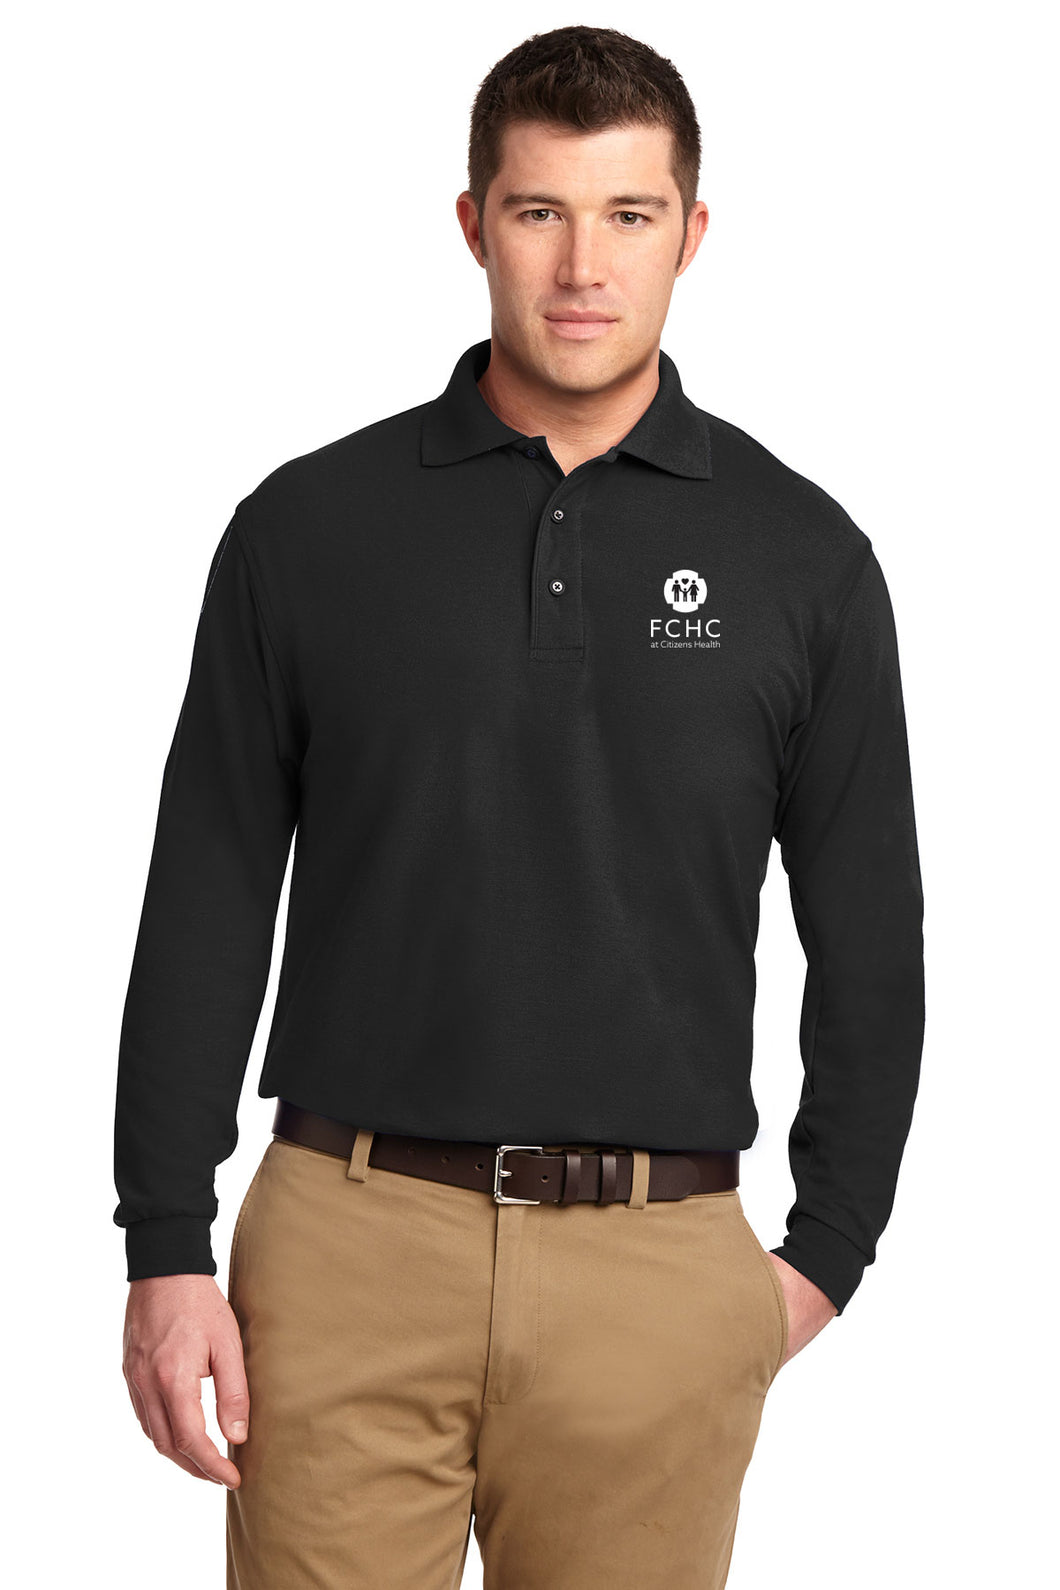 Port Authority® Long Sleeve Silk Touch™ Polo - FCHC